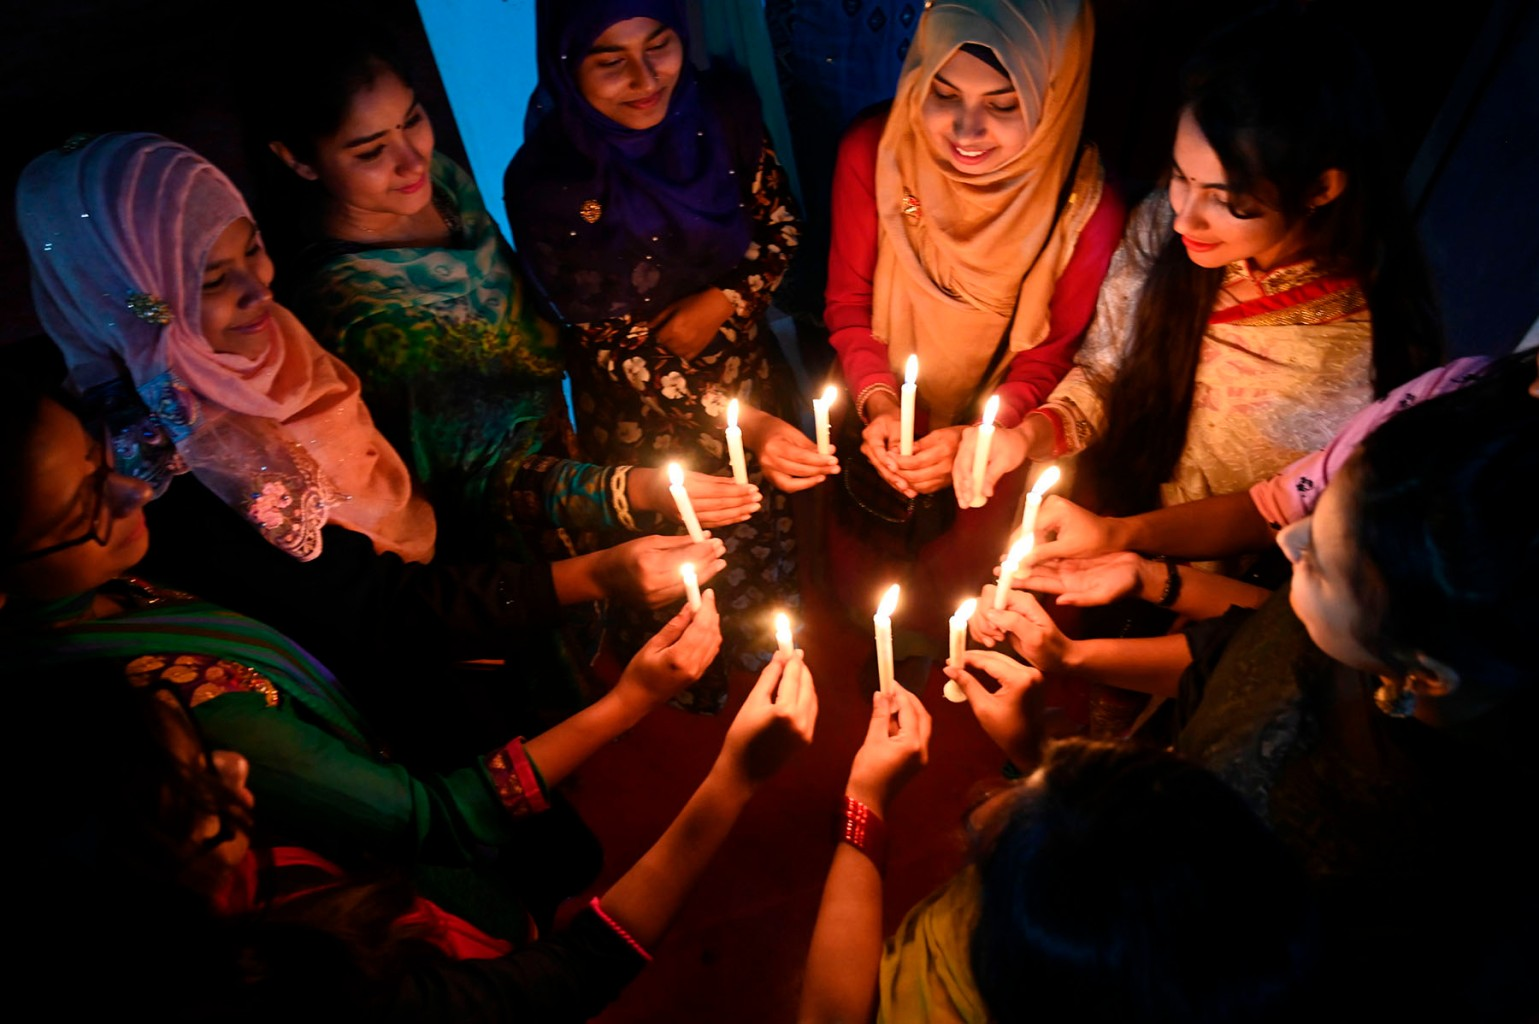 Bangladeshi women attend a candlelight vigil to mark International Women's Day in Dhaka late on March 7. MUNIR UZ ZAMAN/AFP/Getty Images